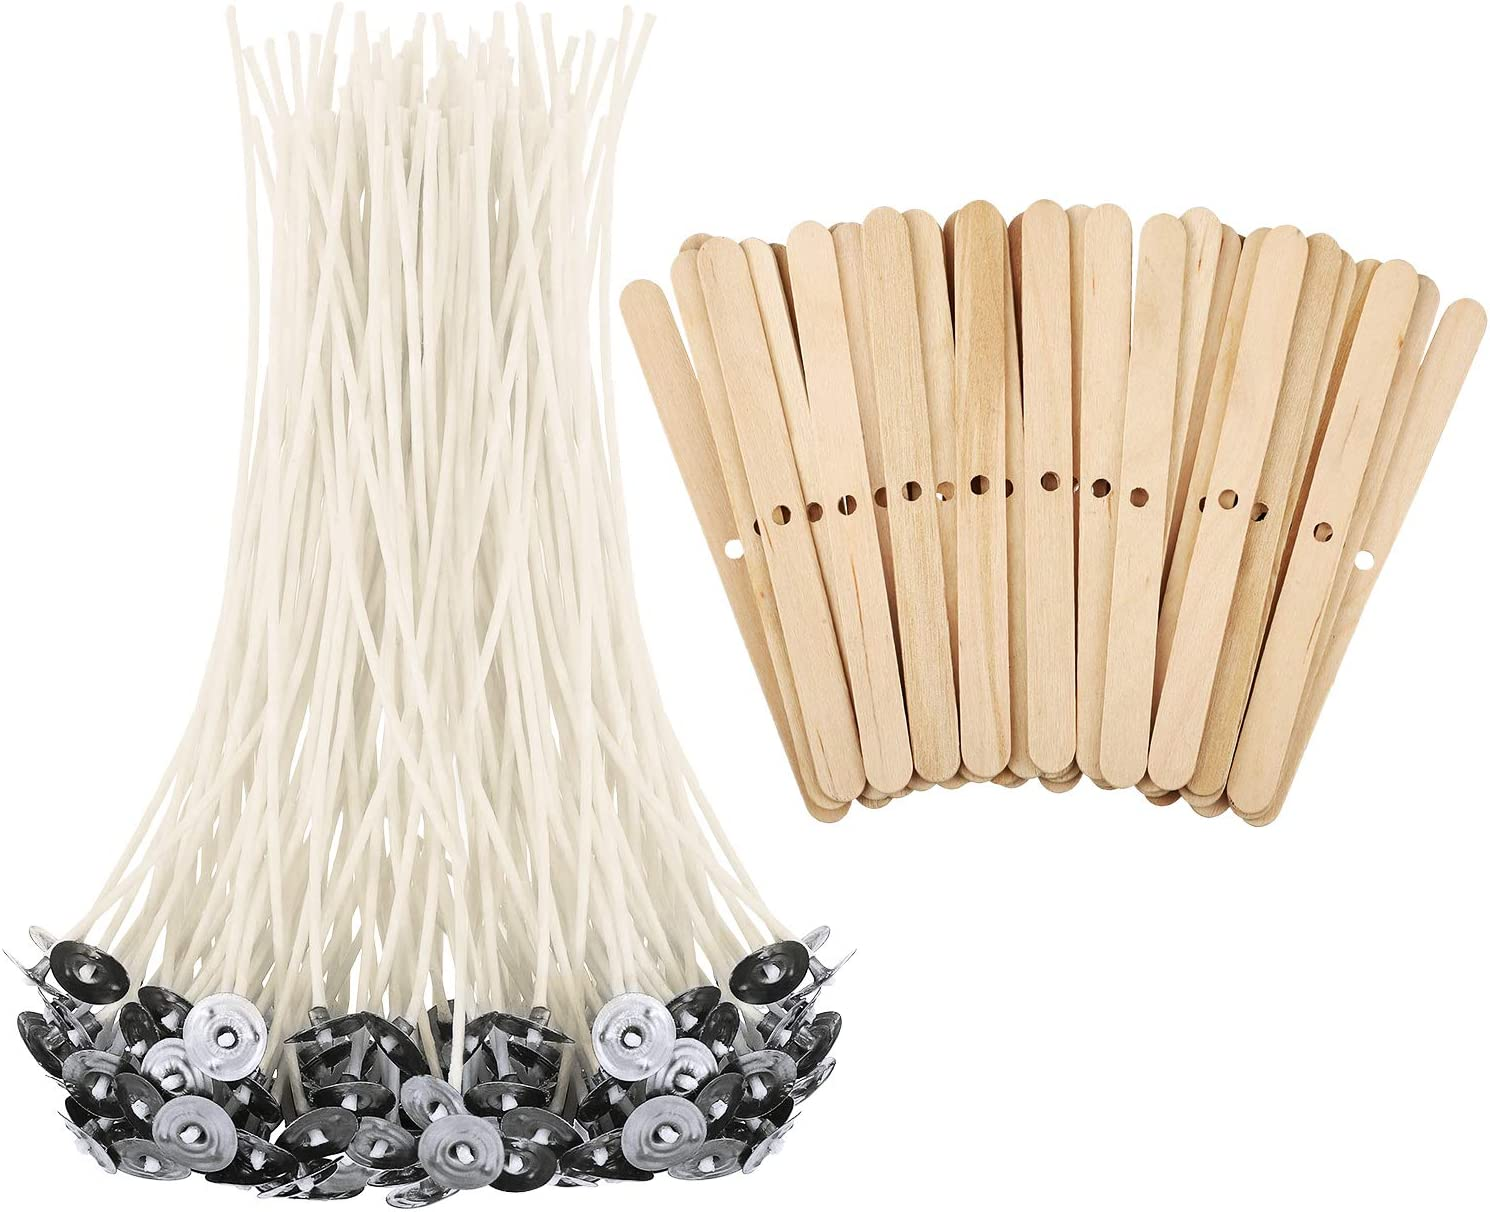 300 Pcs 6 Inch Candle Wicks Low Smoke Natural Cotton,60 Pcs Stickers Pre-Waxed DIY for Candle Making 360 Pcs Candle Wicks Kits